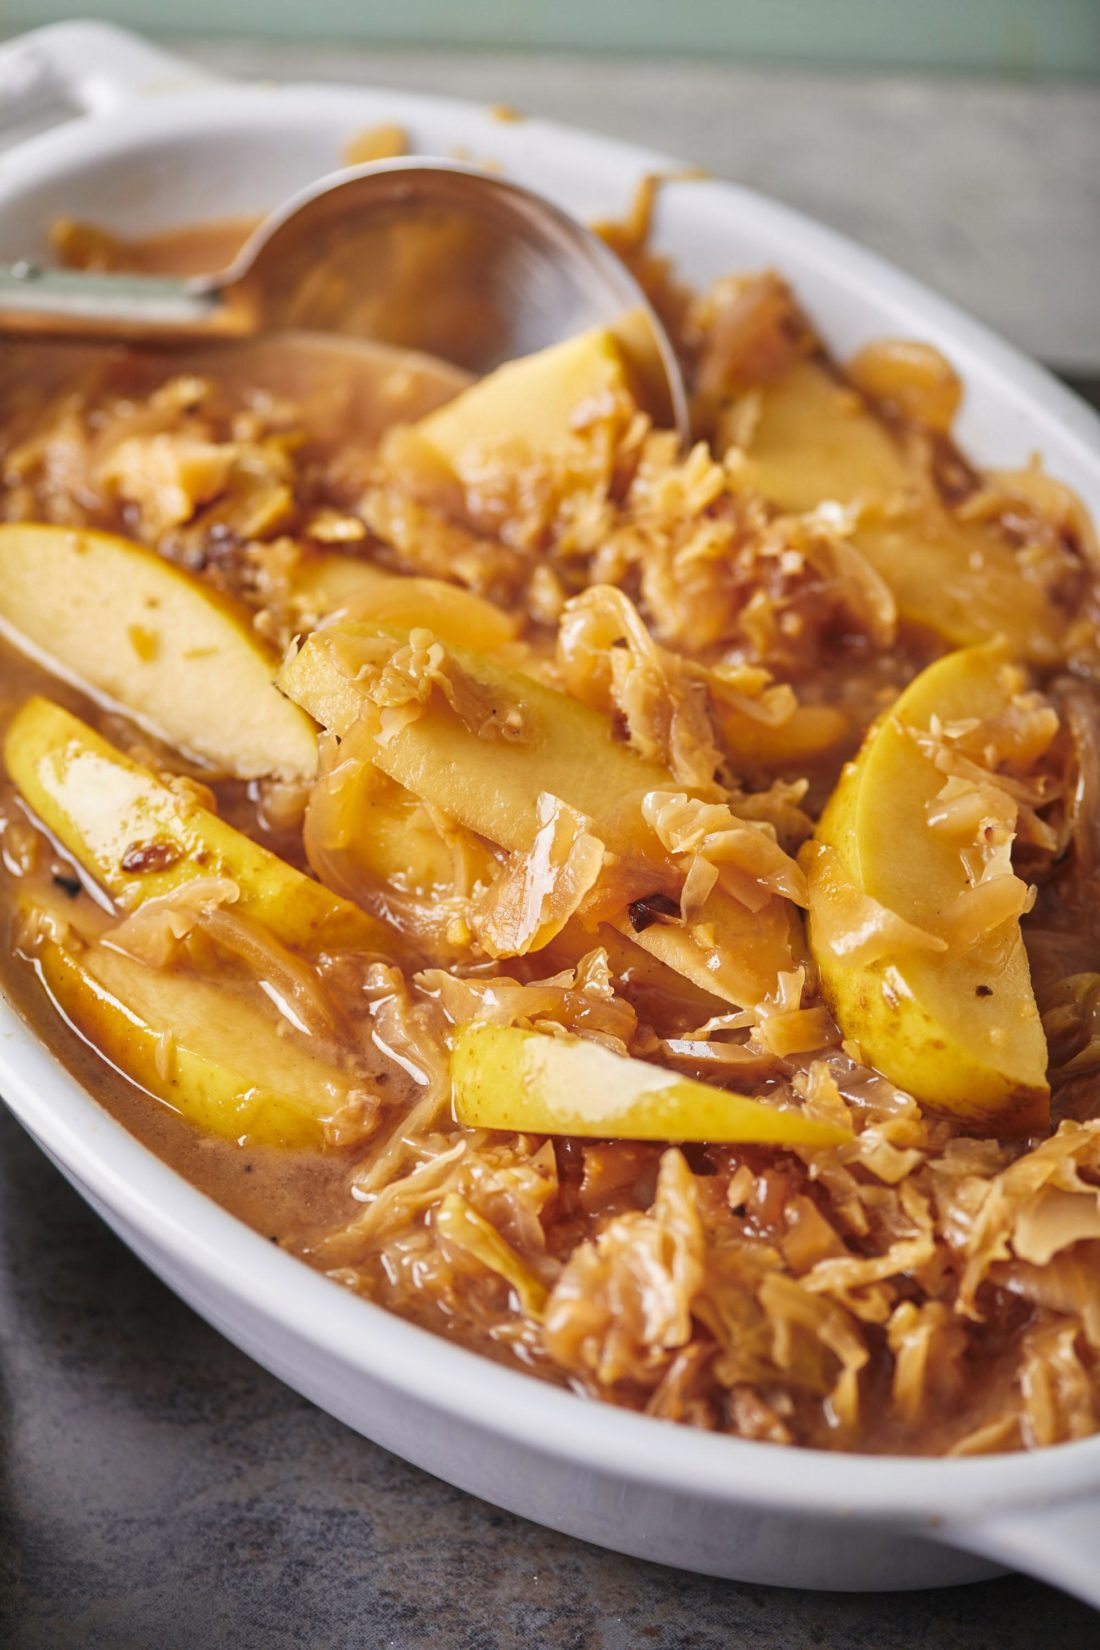 Slow Cooker Fall-Apart Braised Pork with Cabbage and Apples